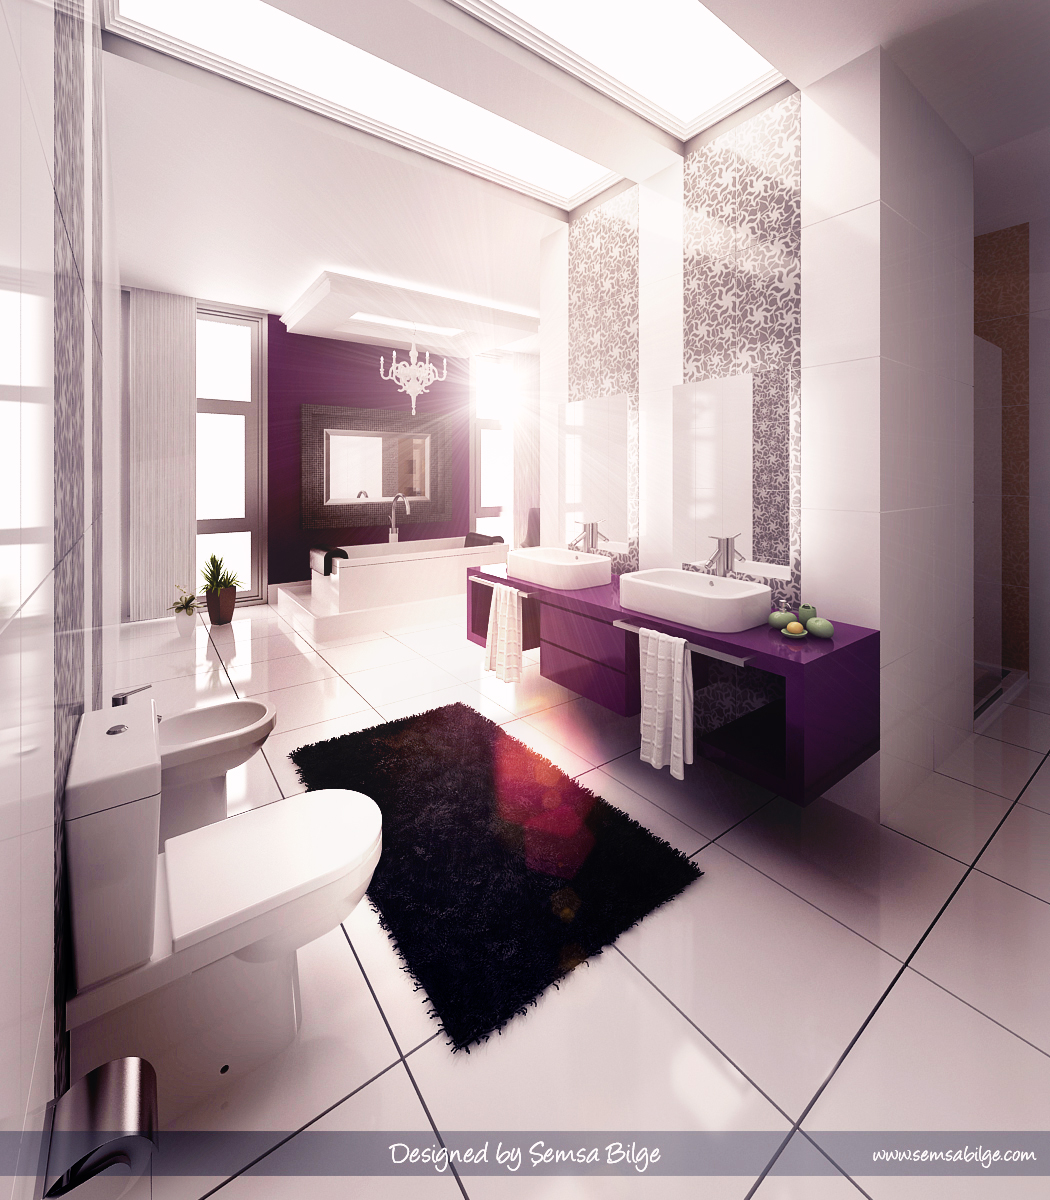 Beautiful bathroom designs ideas interior design interior decorating ideas interior design Beautiful modern bathroom design